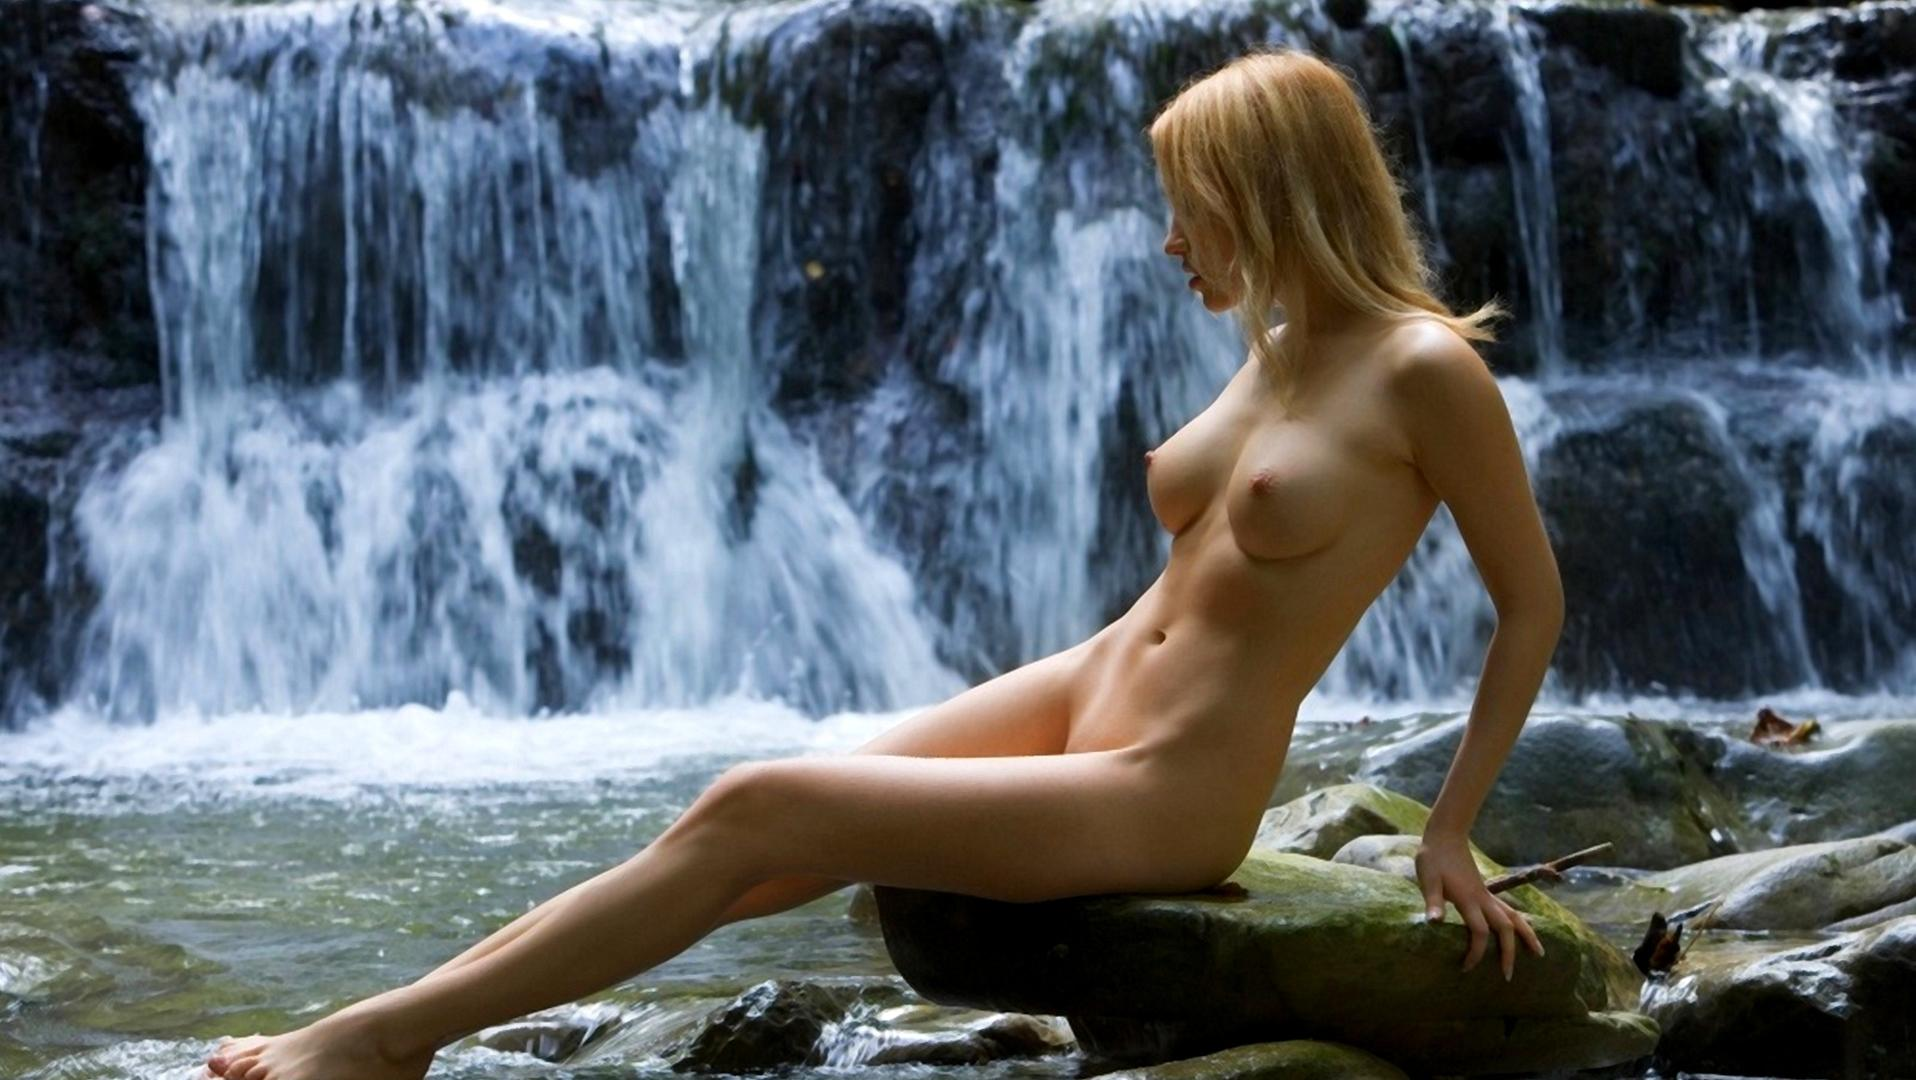 Amazingly! thank Lia may nude wallpaper 1920 x 1080 are